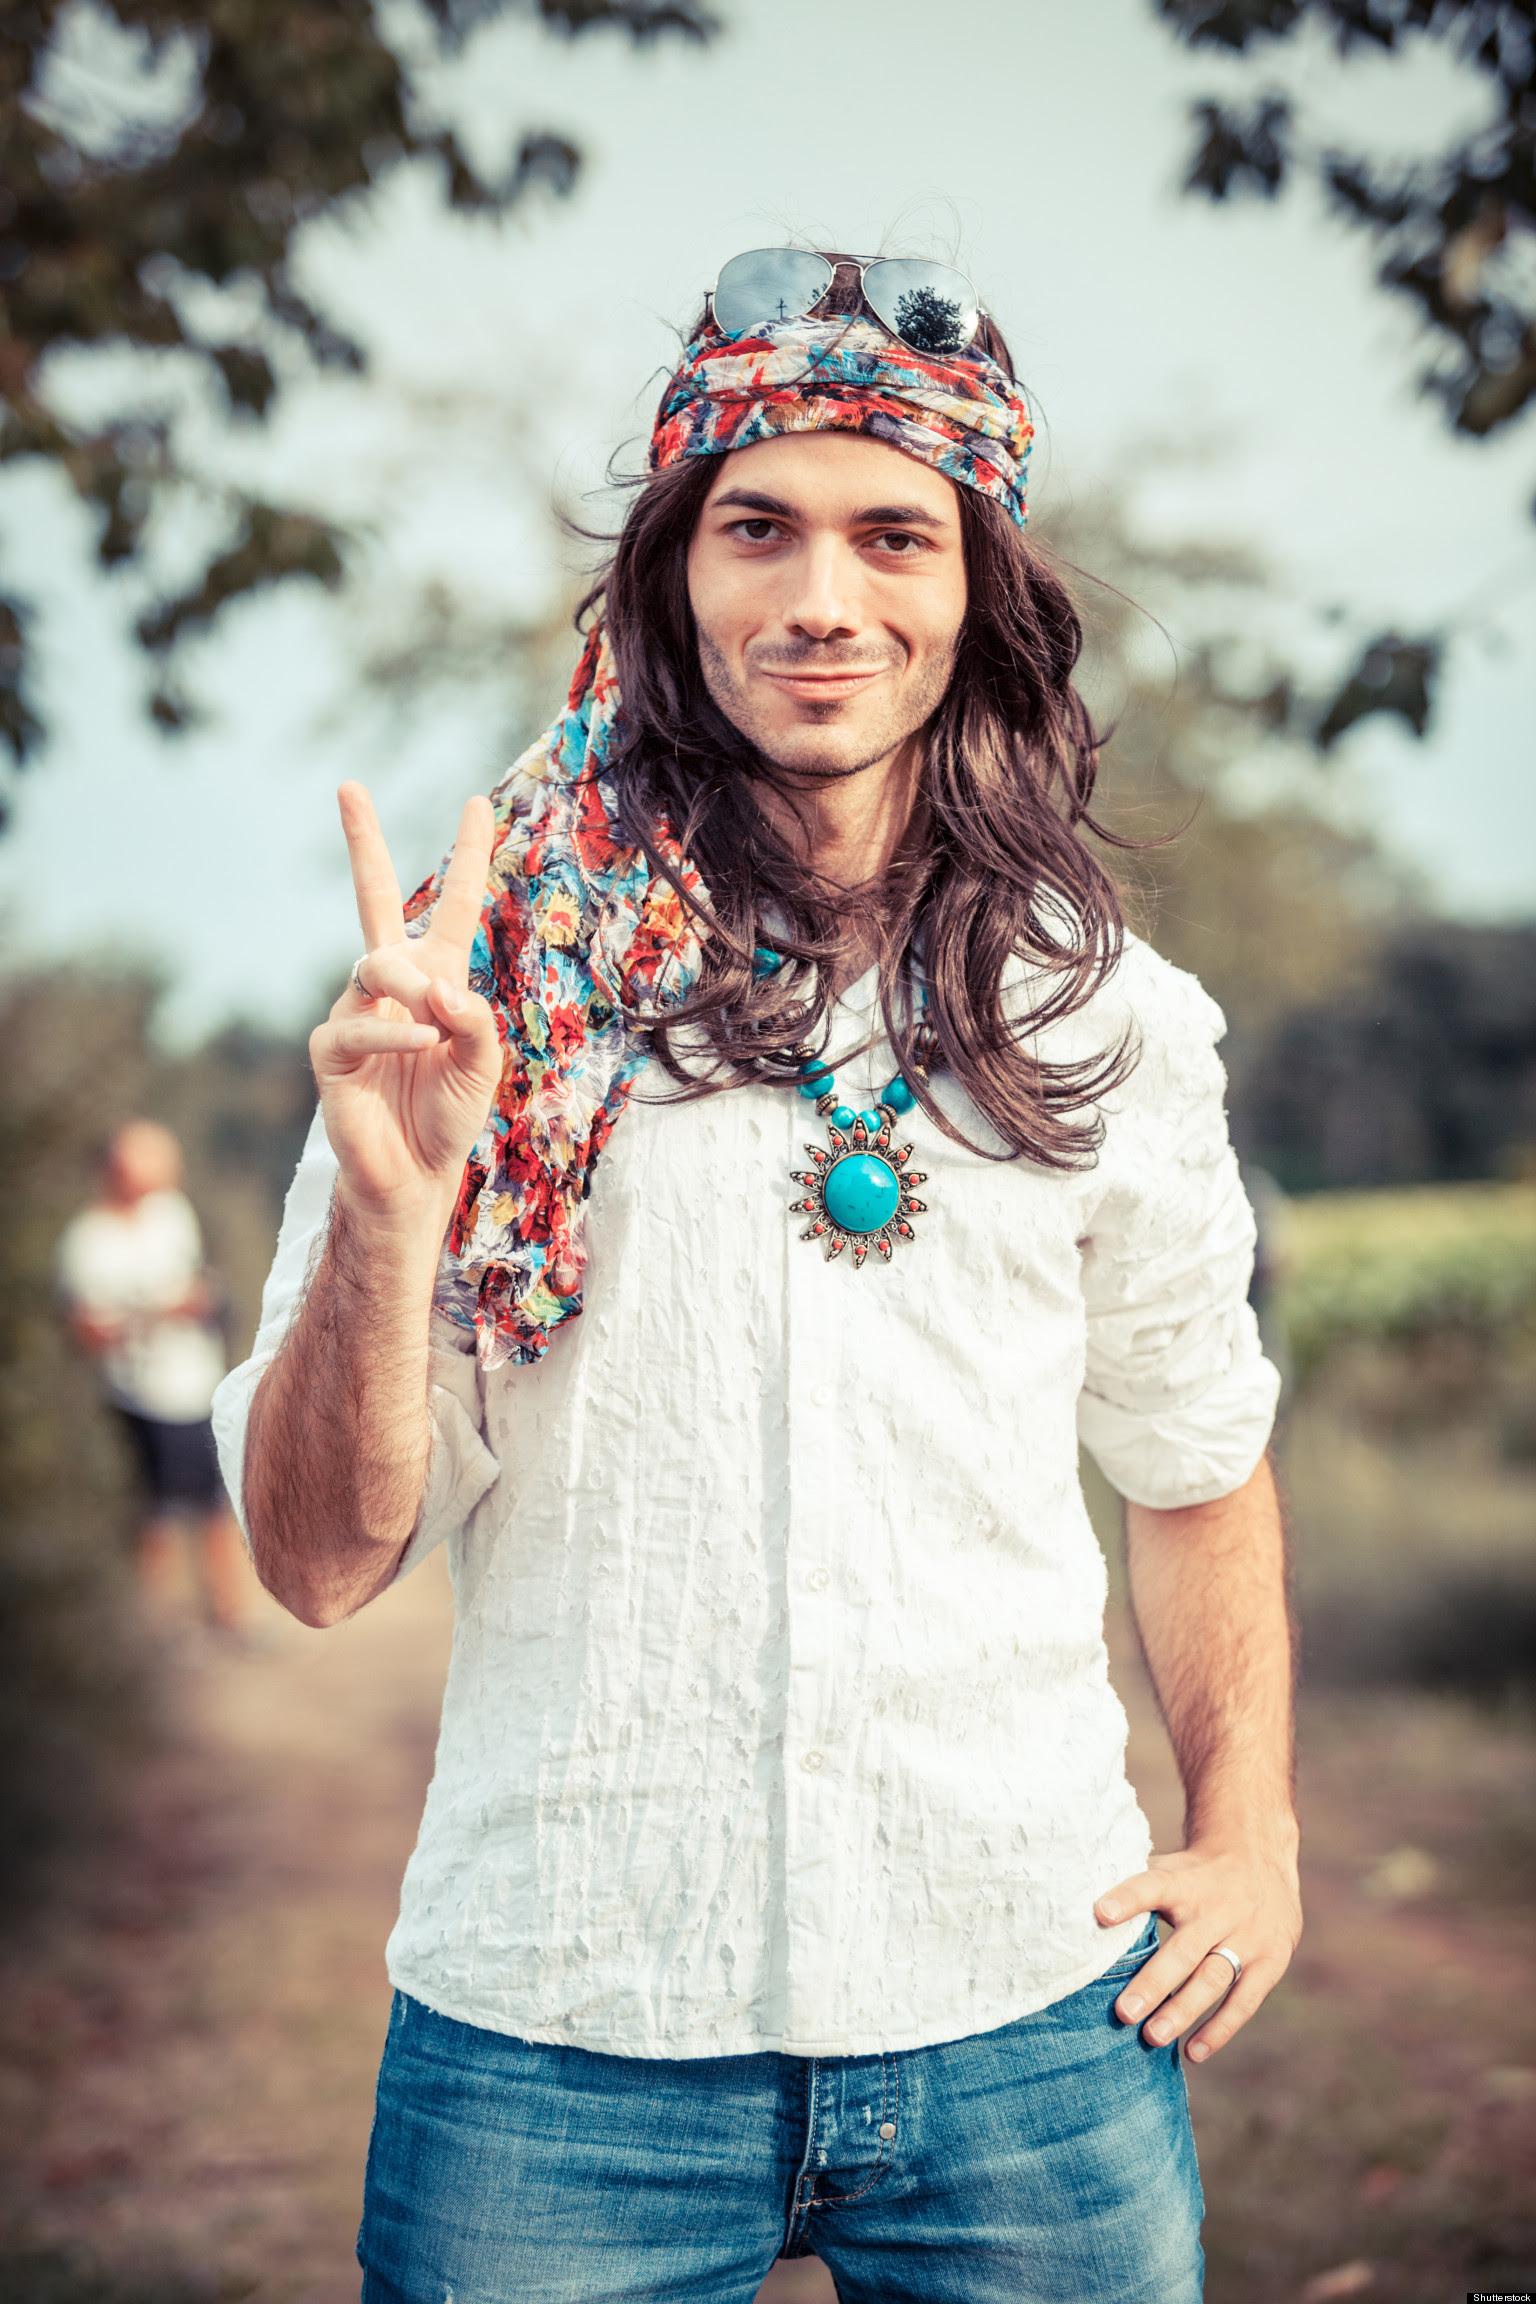 boulder ranked nation's 4th best 'city for hippies'